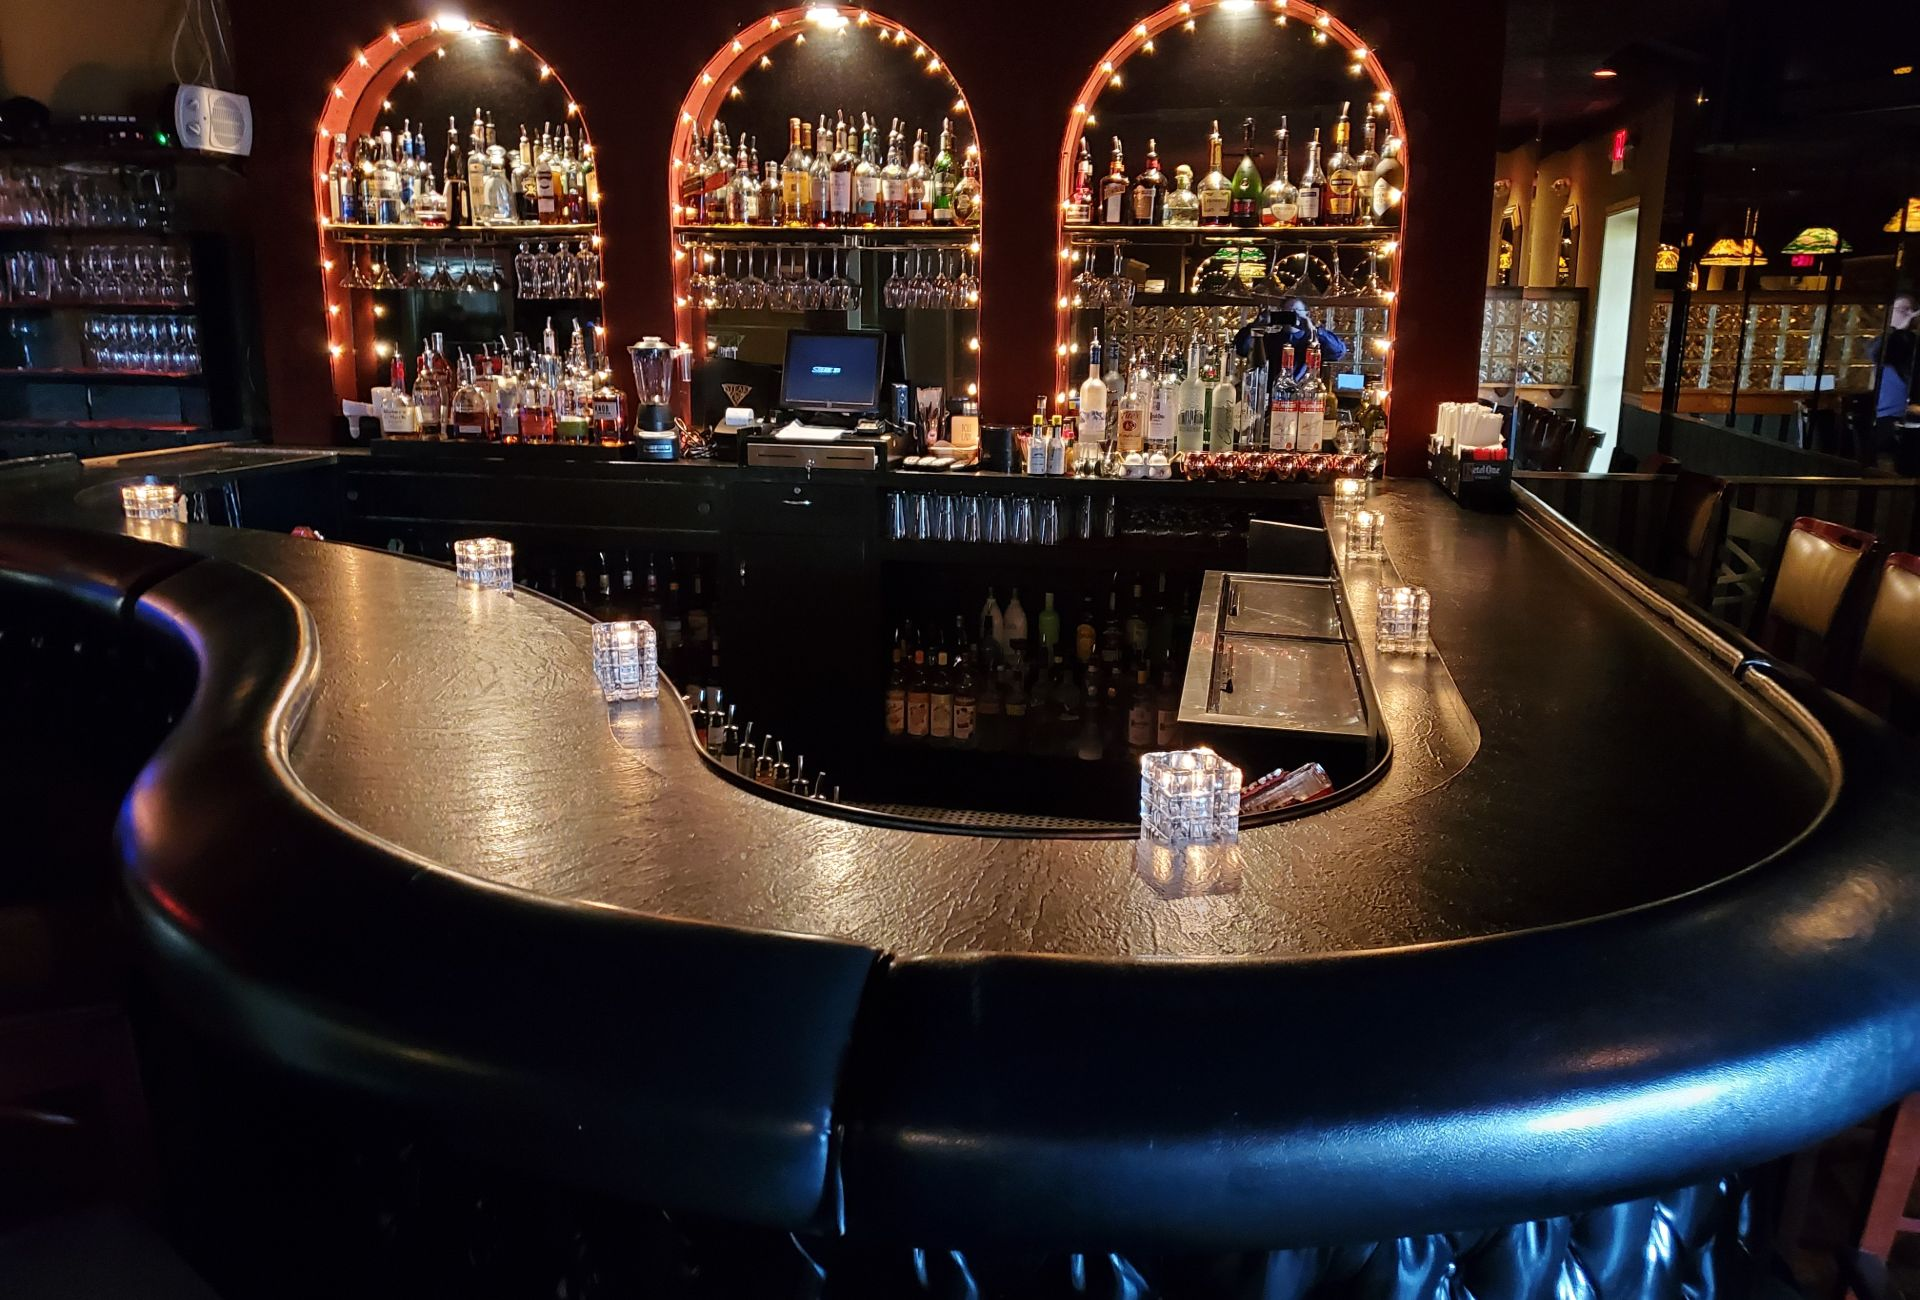 Piano shaped bar with arched lights with shelves of liquor bars inside